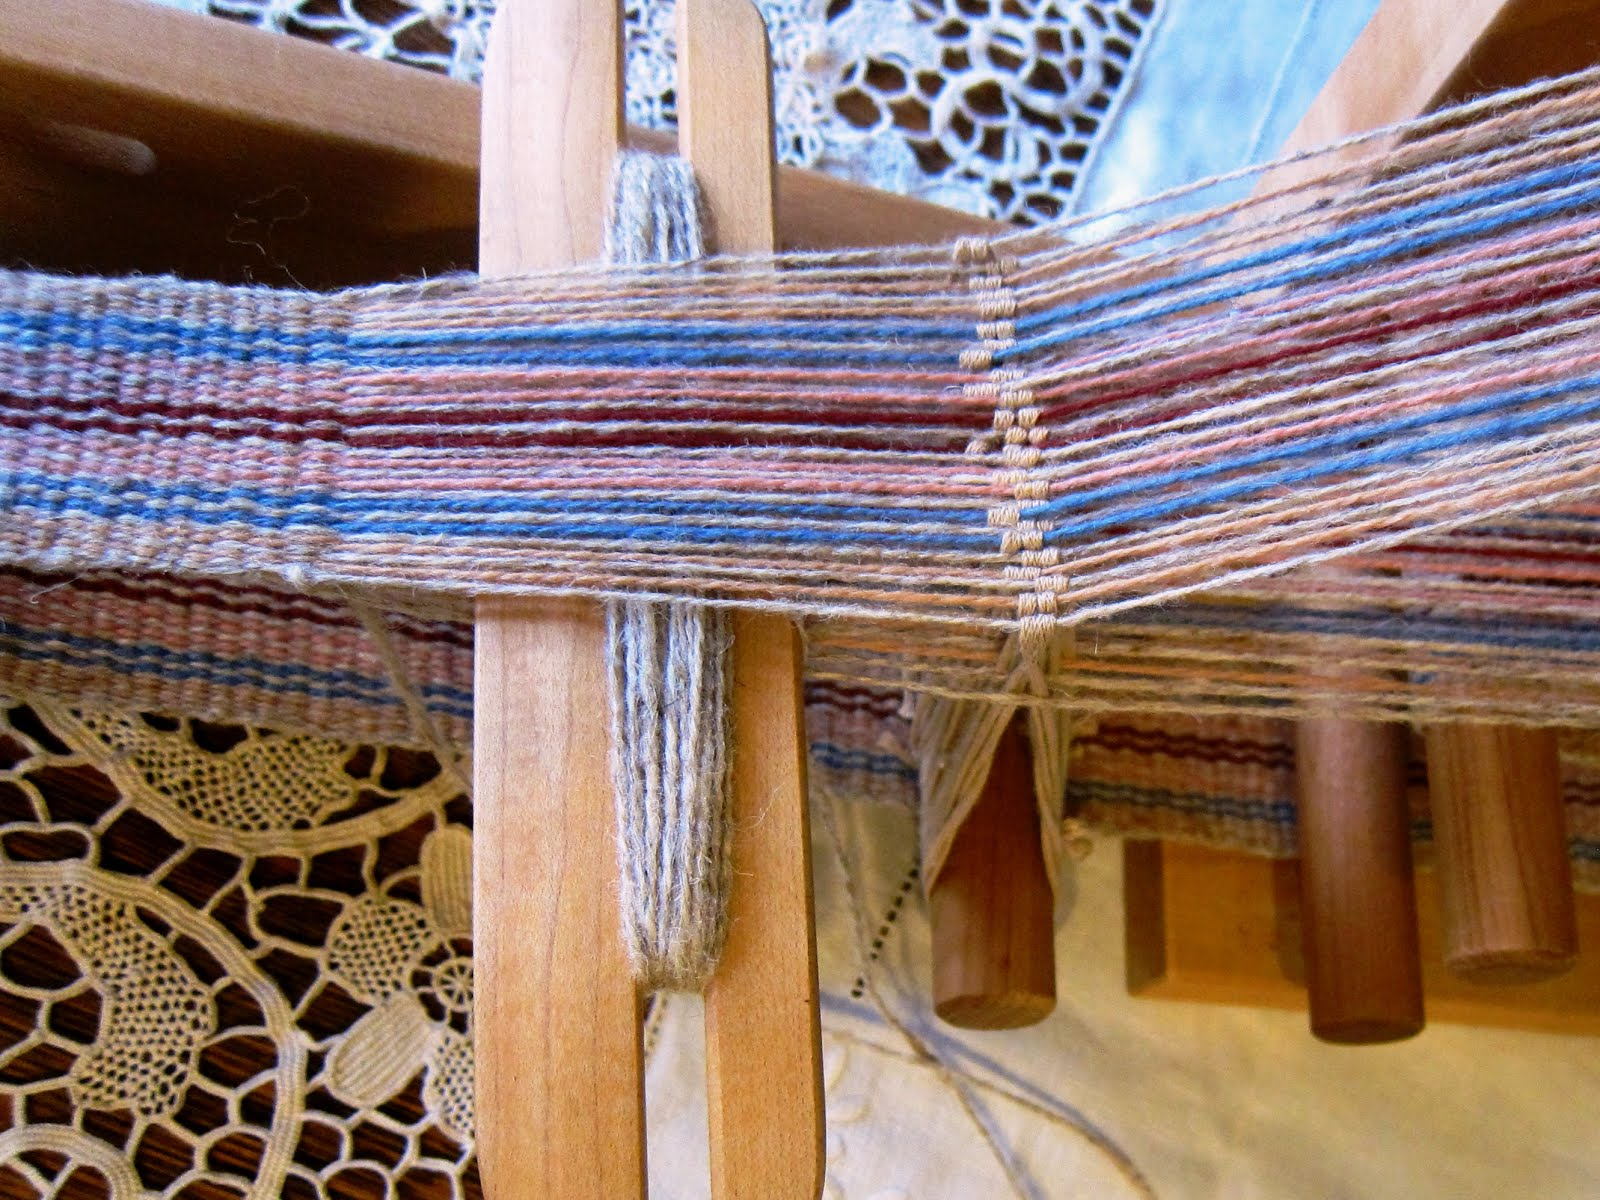 Weaving an Inkle Band